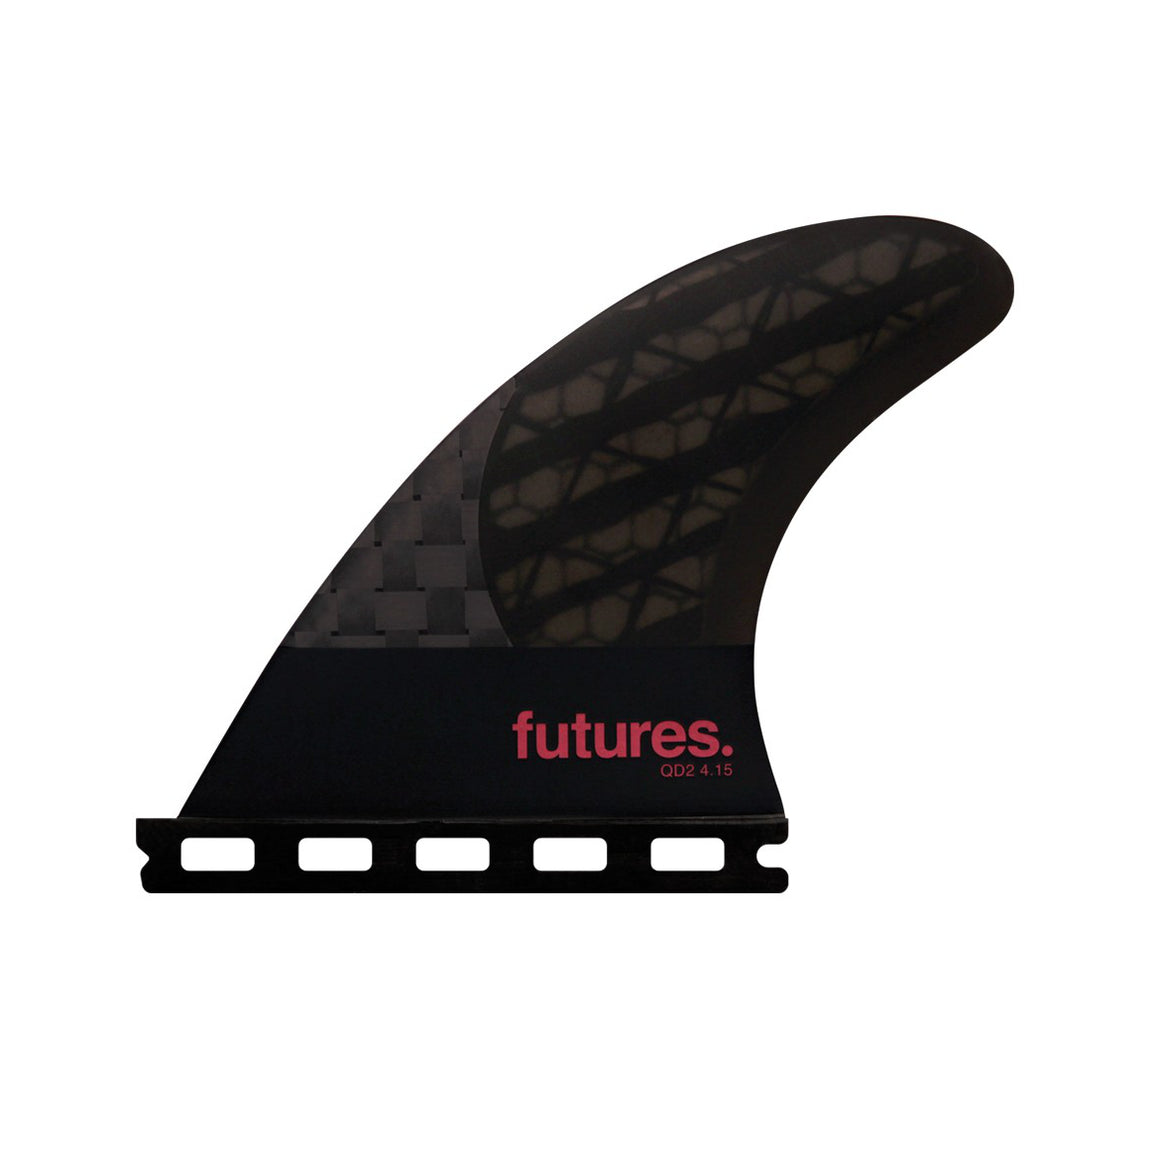 Futures Blackstix 3.0 QUAD TRAILERS - QD2 4.15 80/20